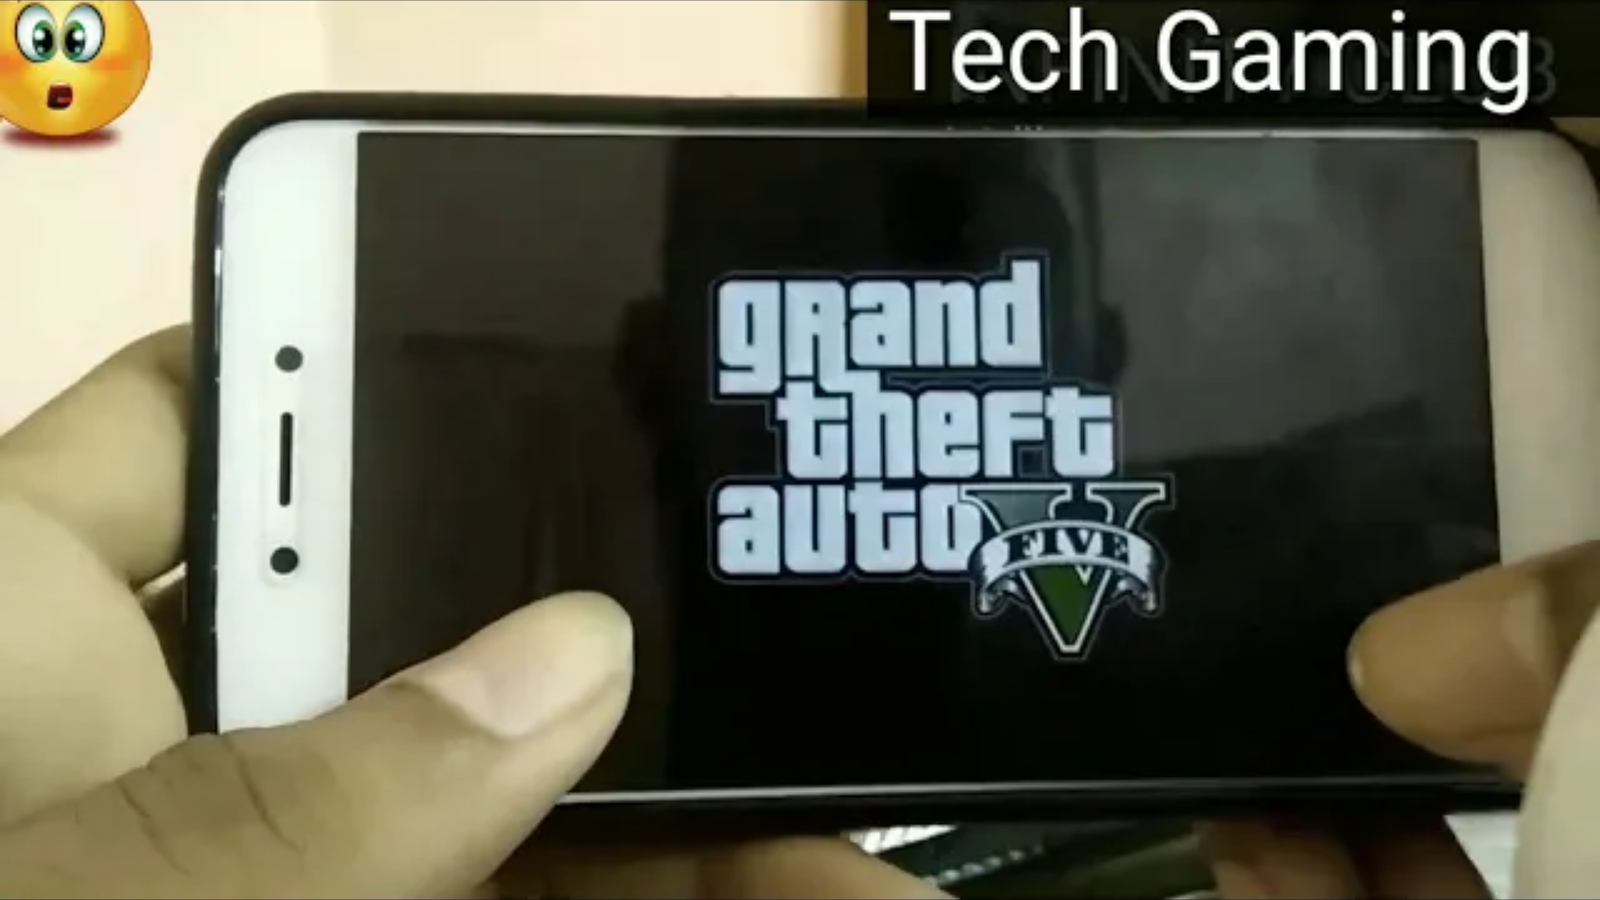 Gta 5 Mobile Pw >> Download Officially Gta 5 Apk Data For Android Andro Arena